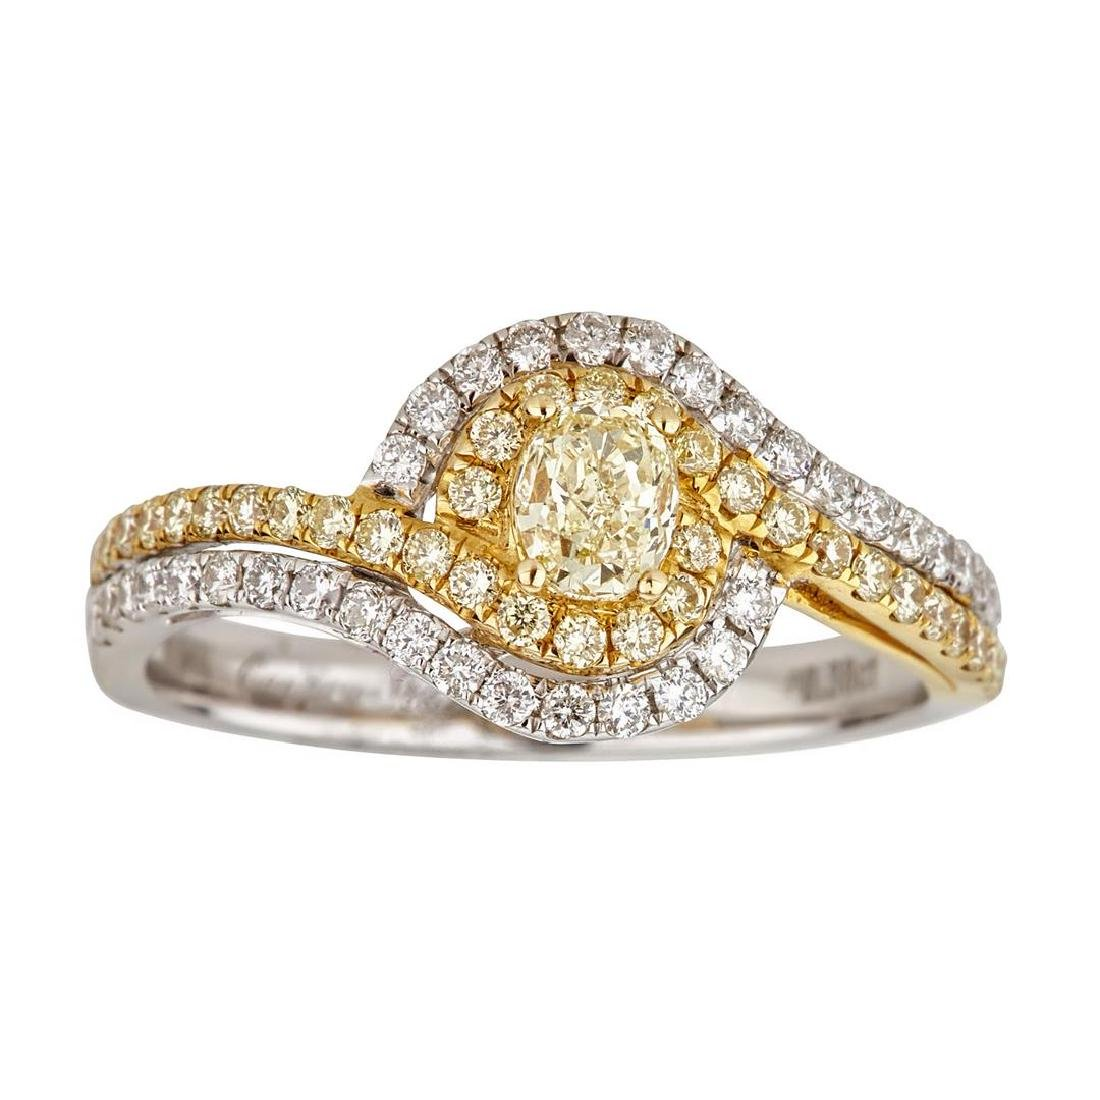 0.93 ctw Yellow and White Diamond Ring - 18KT White and